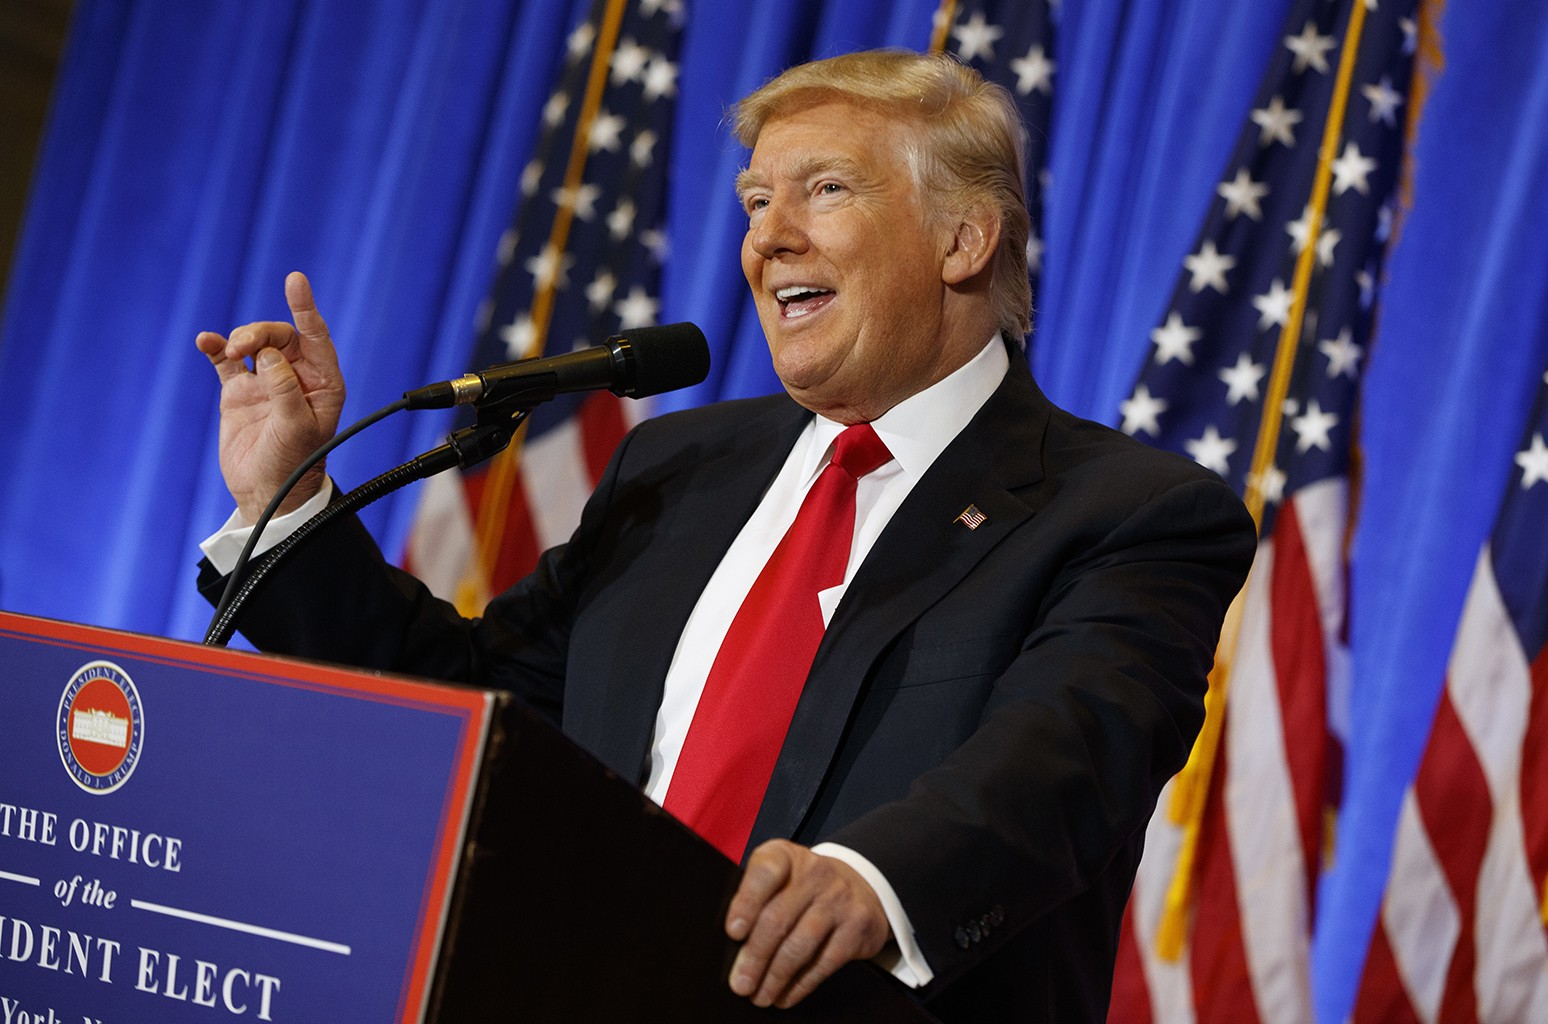 President-elect Donald Trump speaks during a news conference in the lobby of Trump Tower in New York City on Jan. 11, 2017.